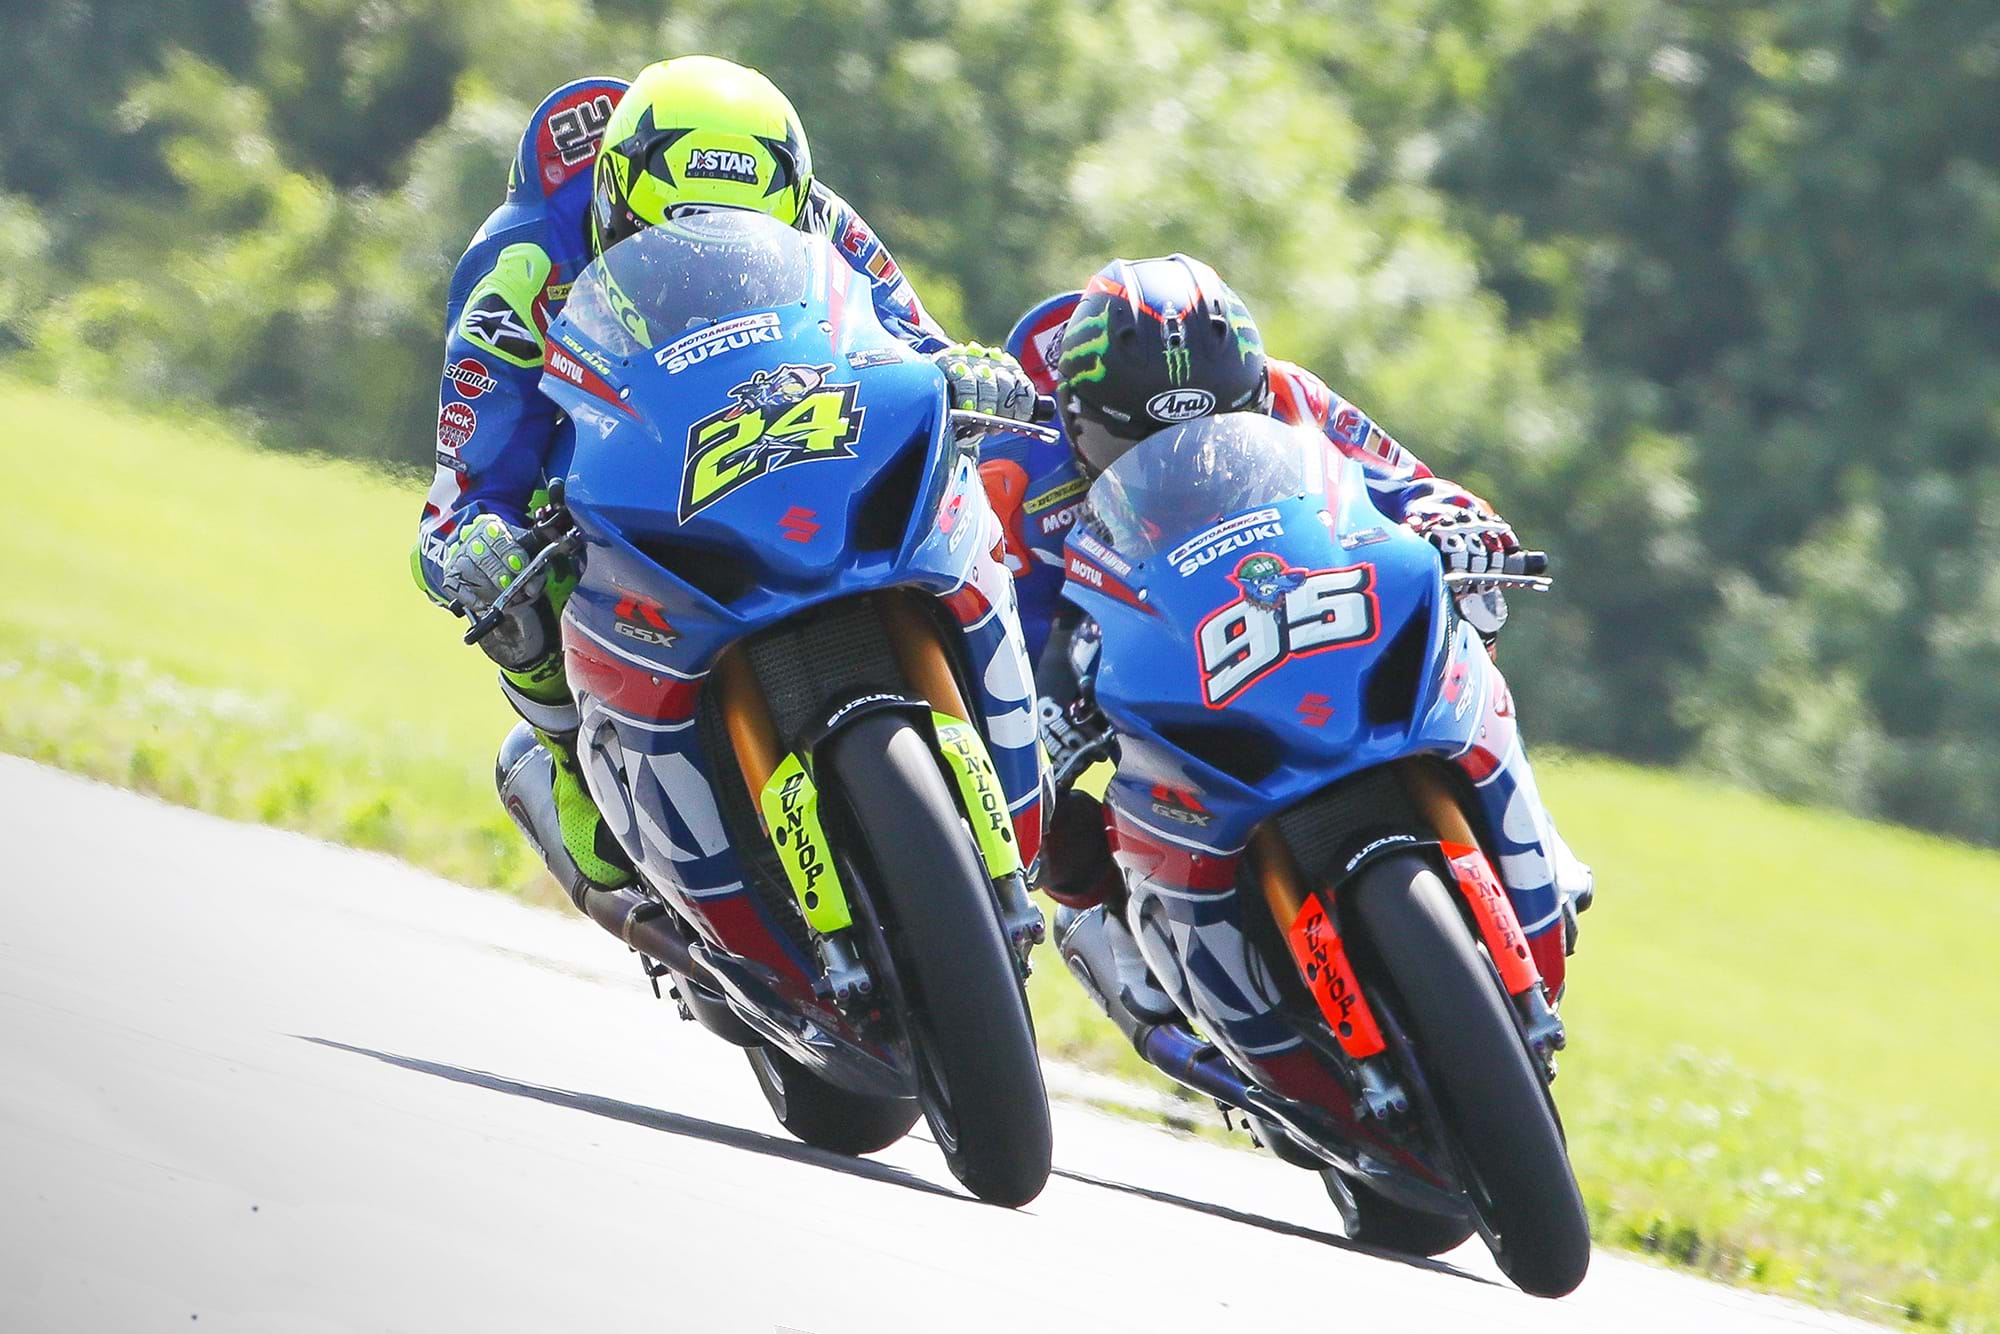 Hayden and Elias at MotoAmerica race - Suzuki GSX-R1000